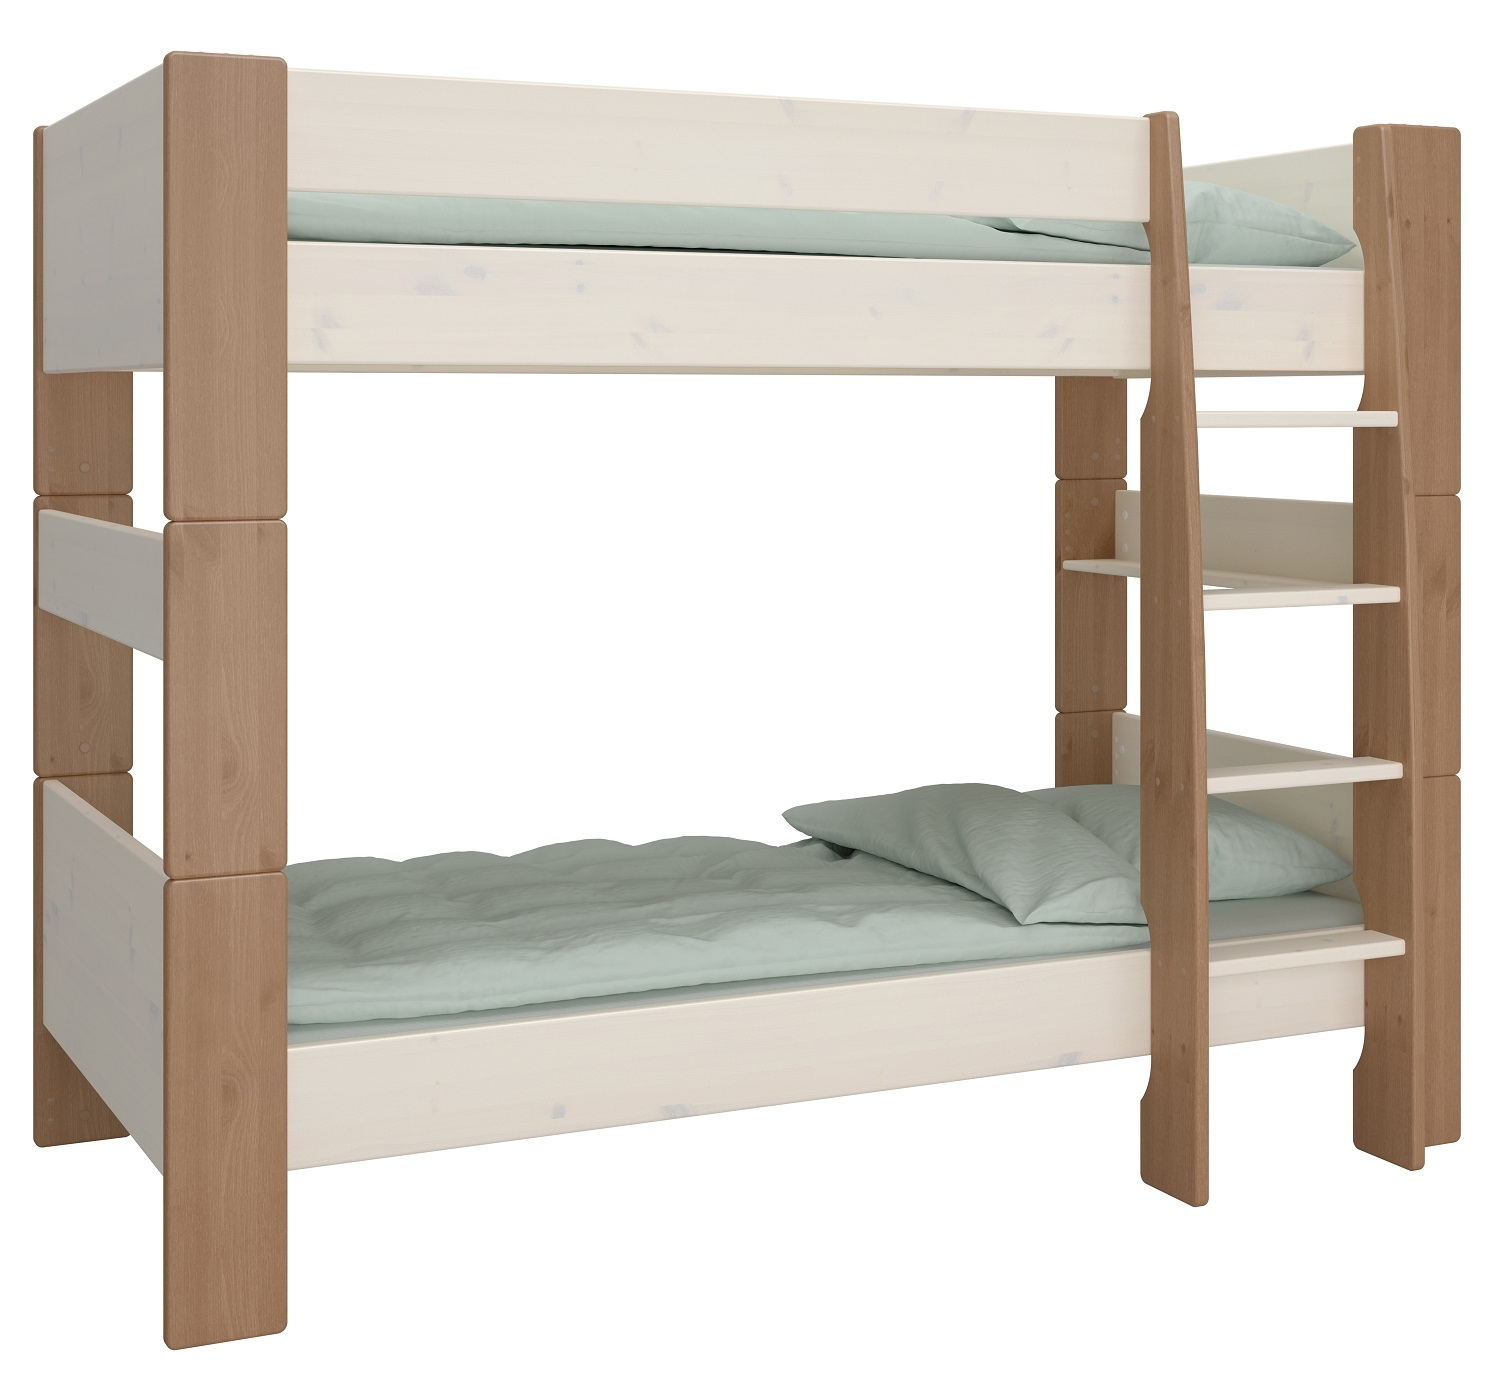 Stapelbed Kids 90x200cm in wit whitewash met steen | DS Style